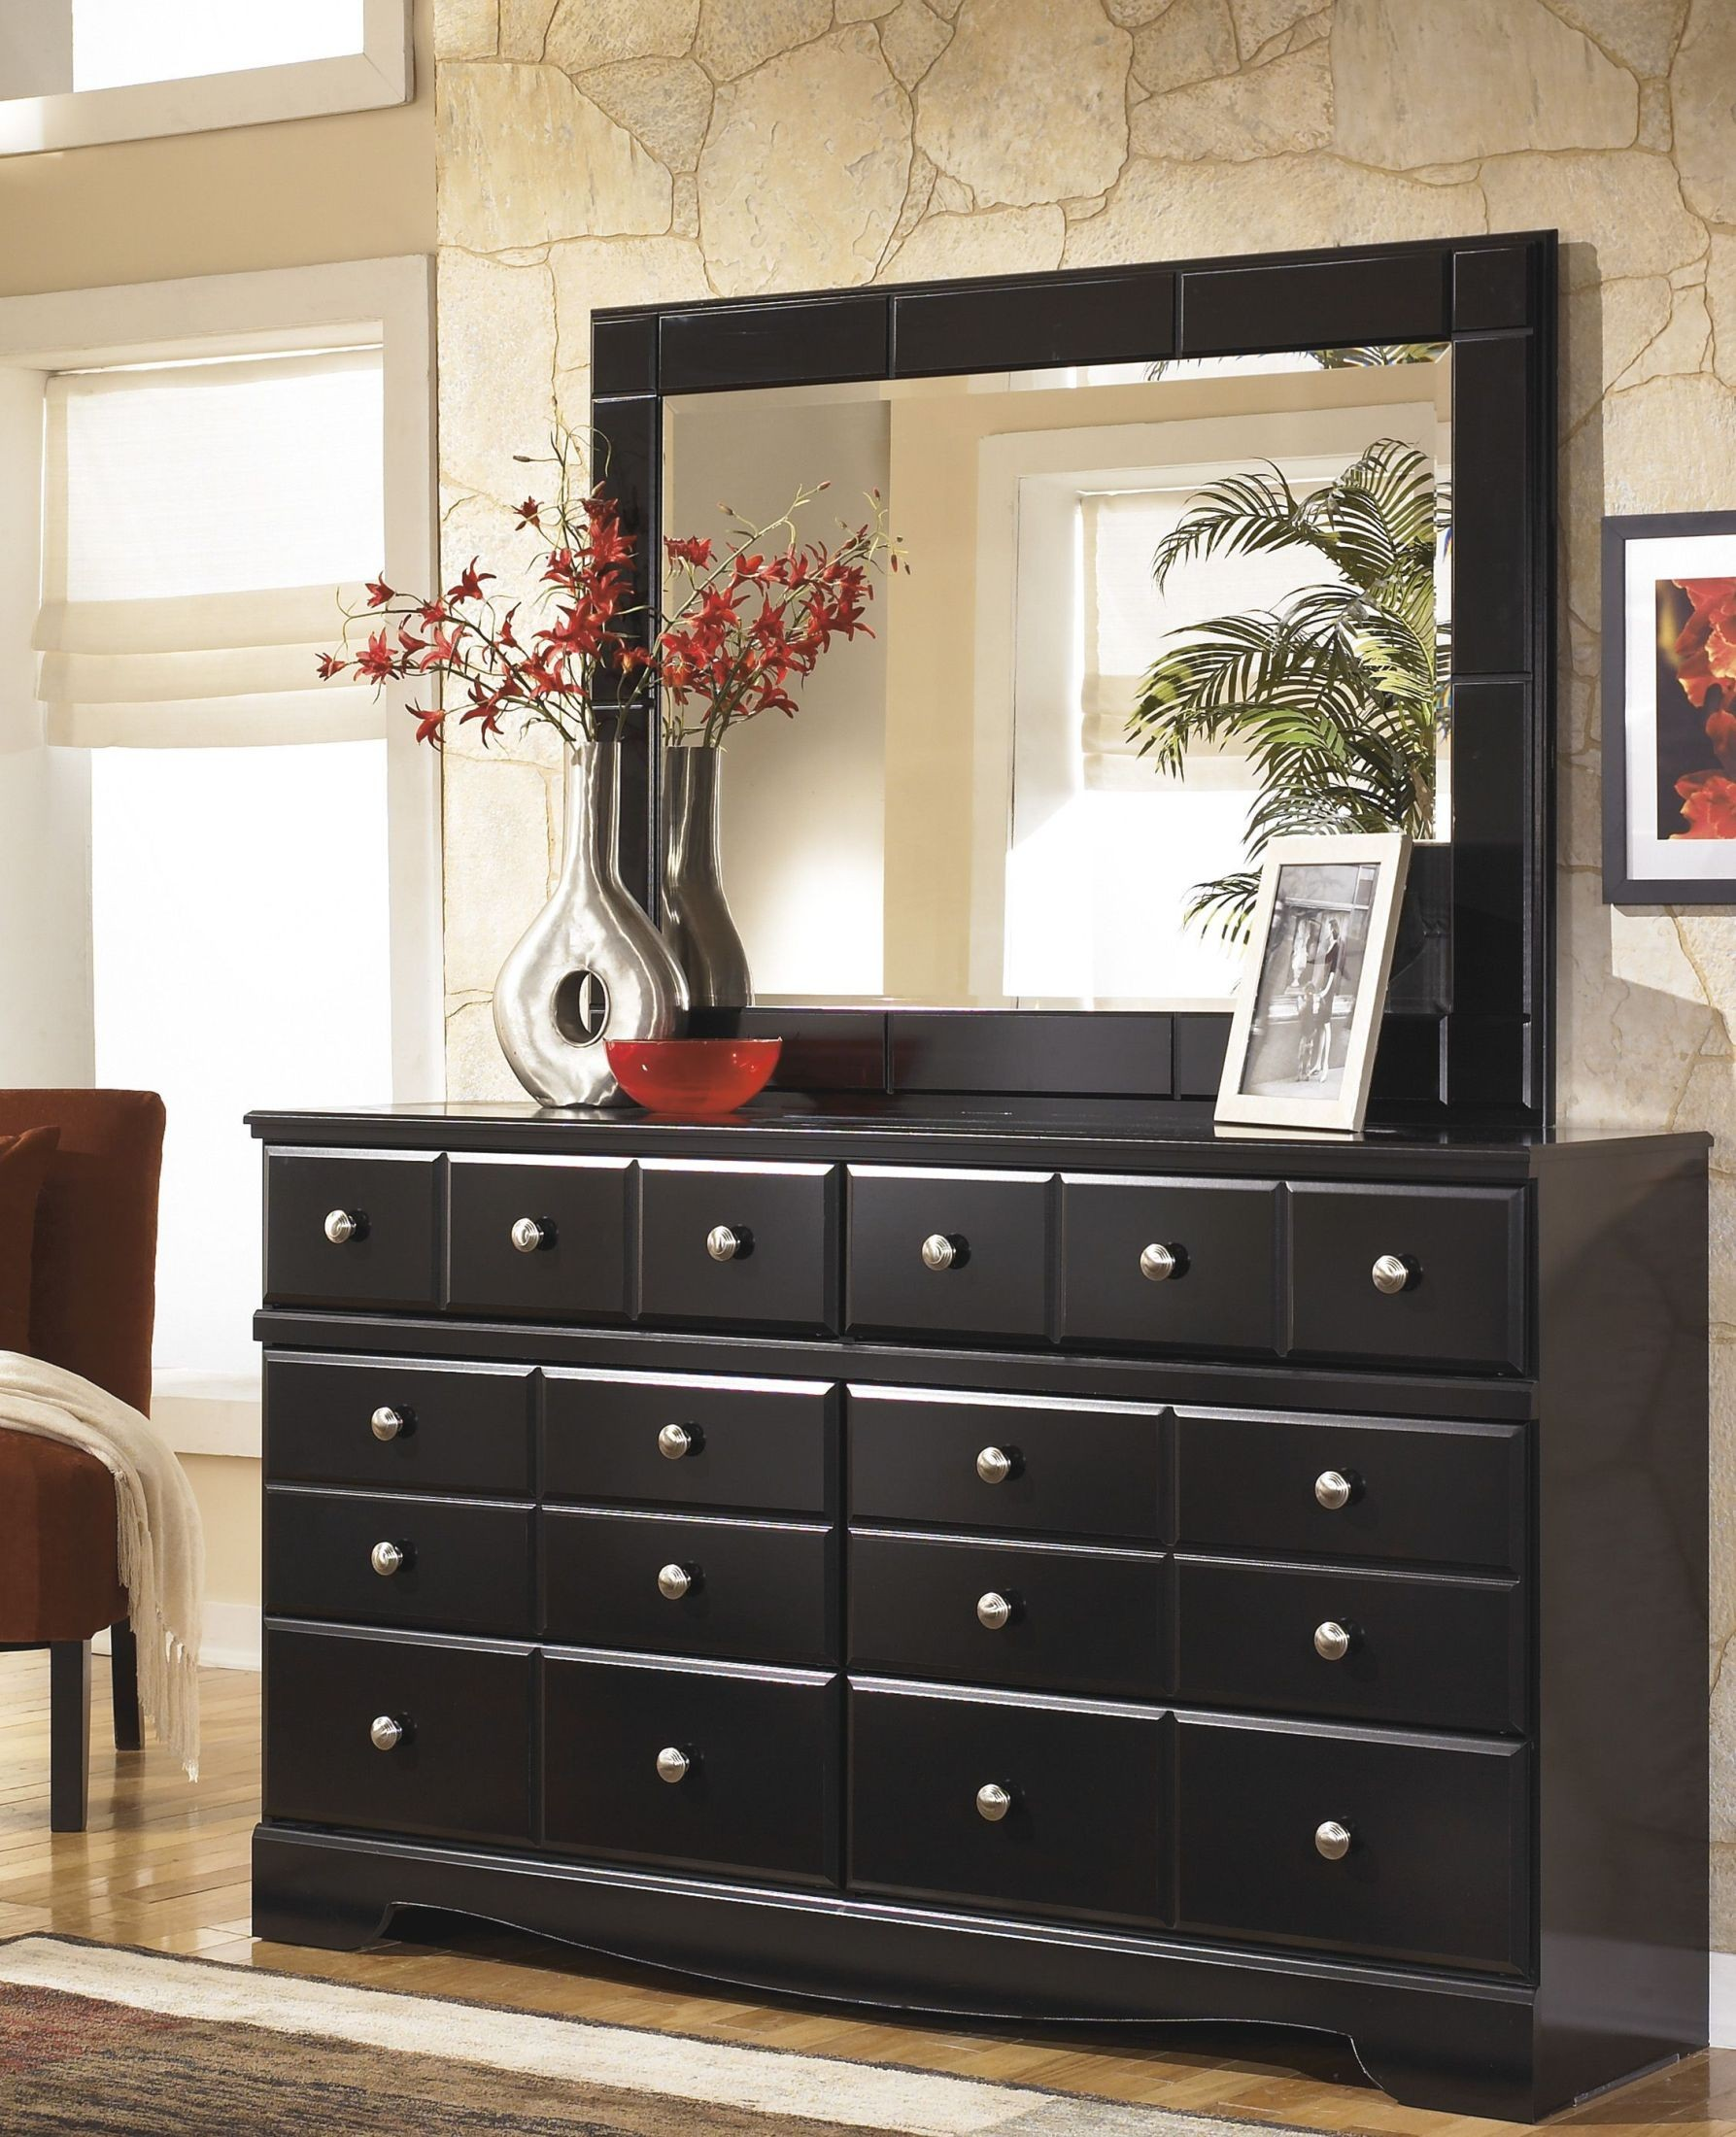 Shay Poster Bedroom Set from Ashley B271 61 64 67 98